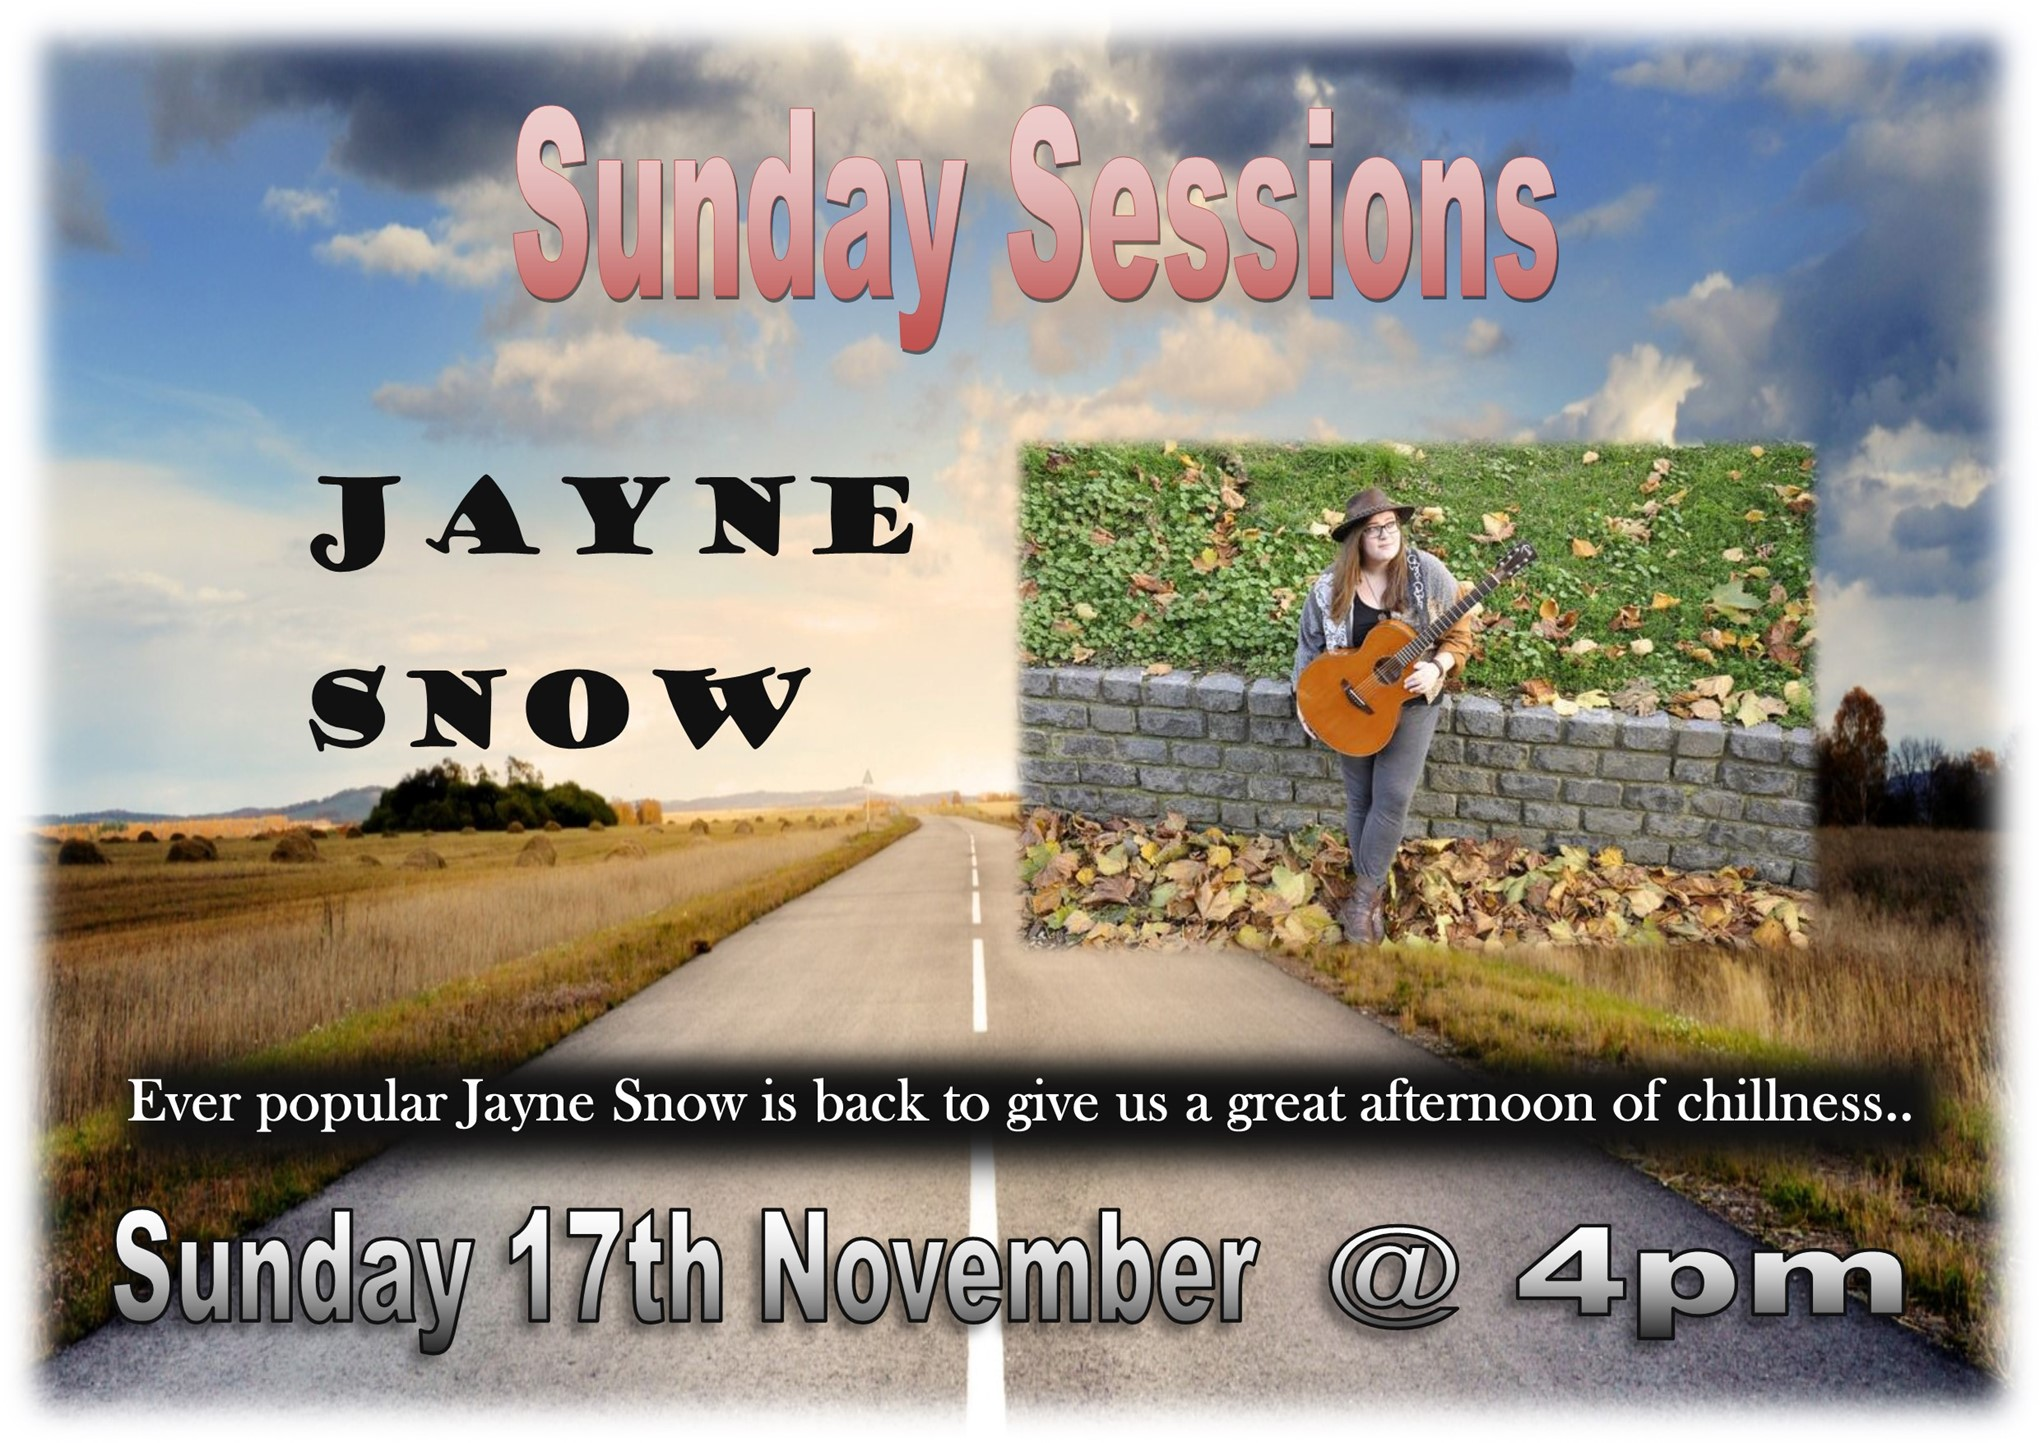 Sunday Sessions with Jayne Snow